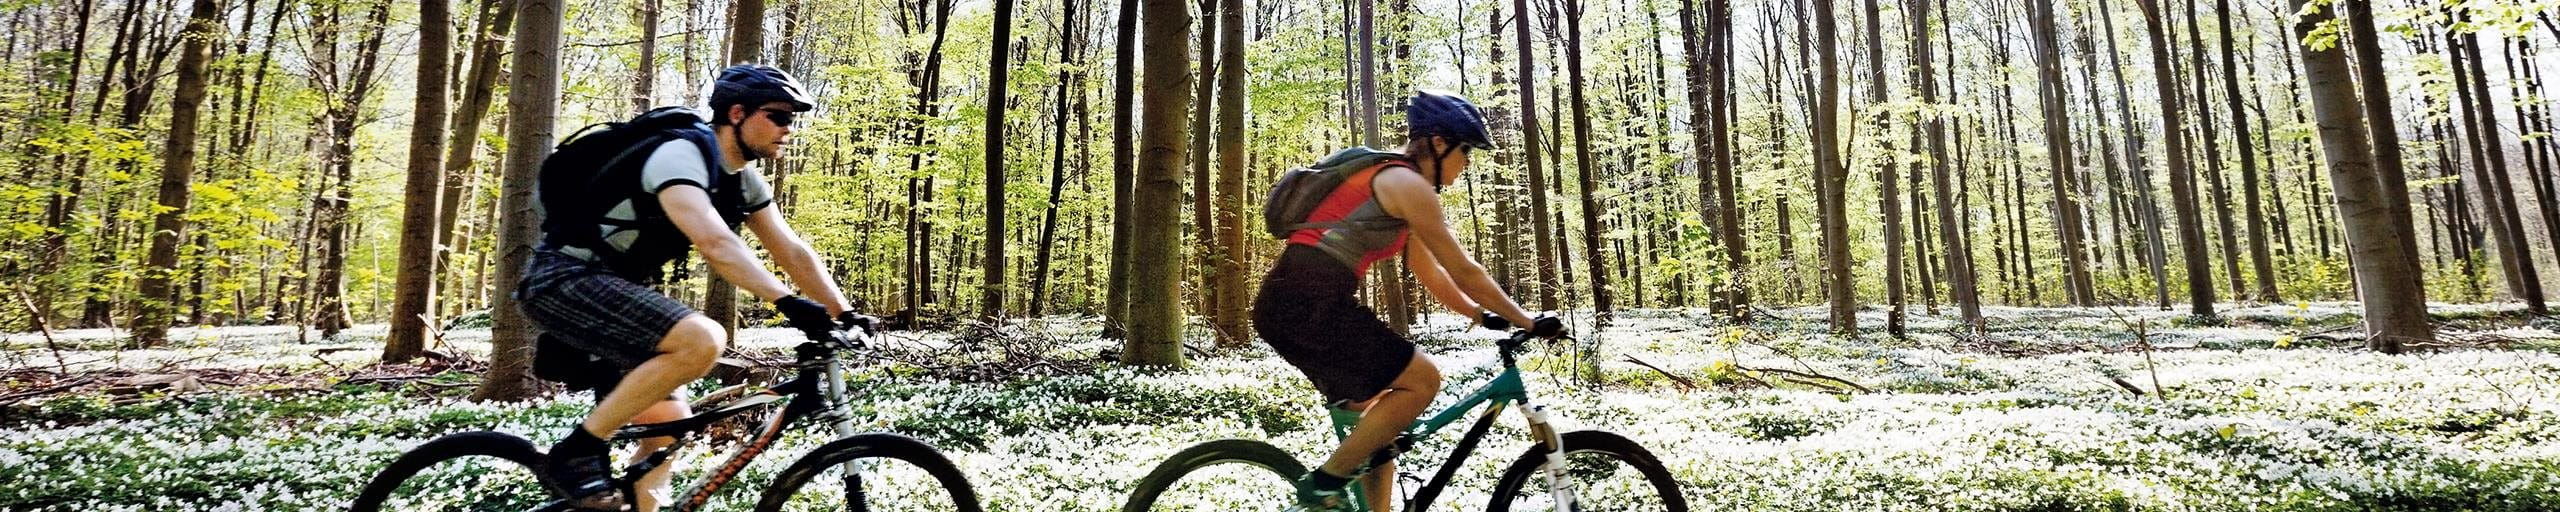 Two people riding mountain bikes in the forrest.